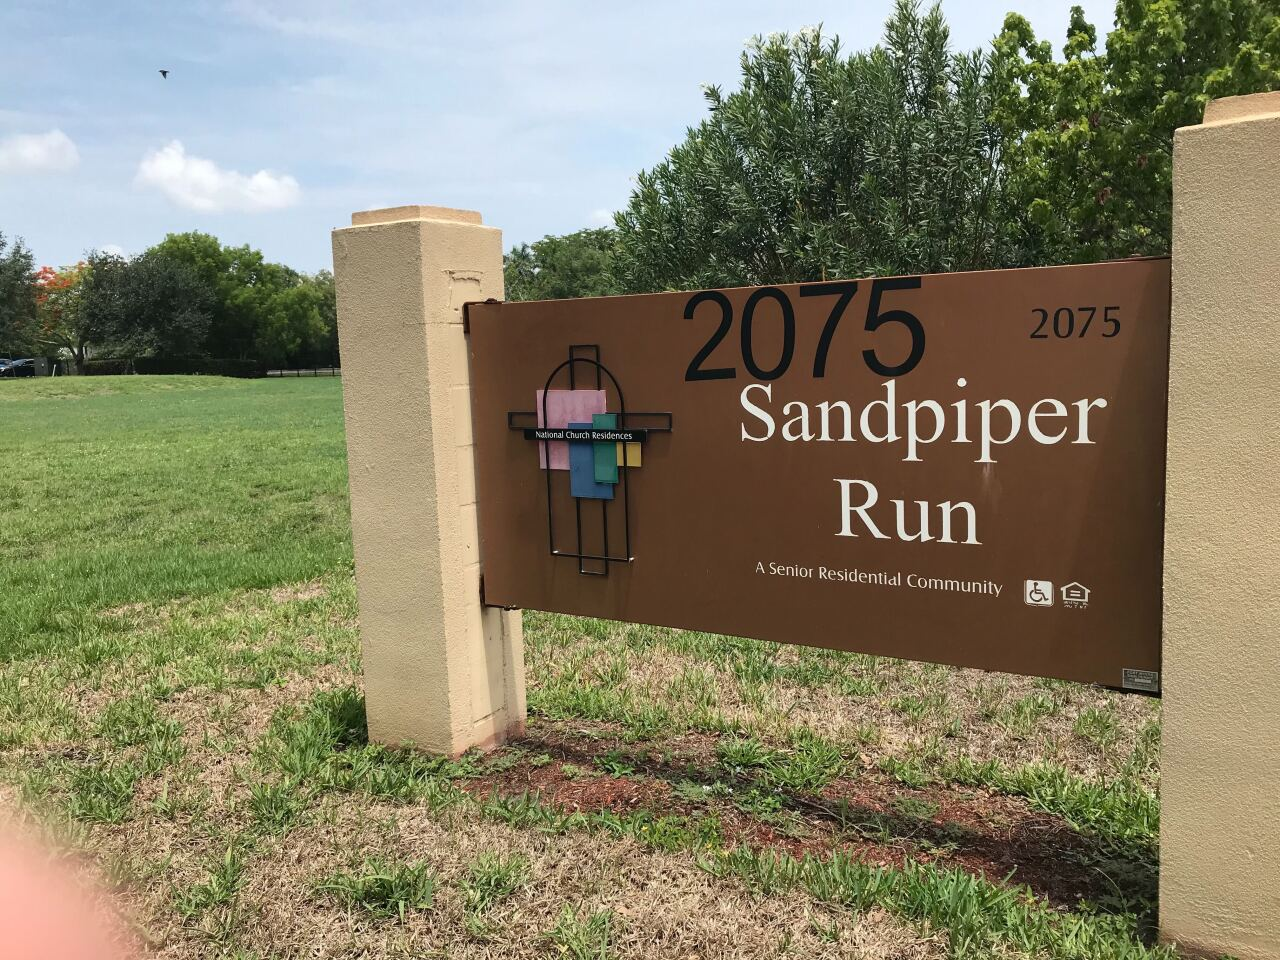 Sexual Assault being investigated at the Sandpiper Run Community